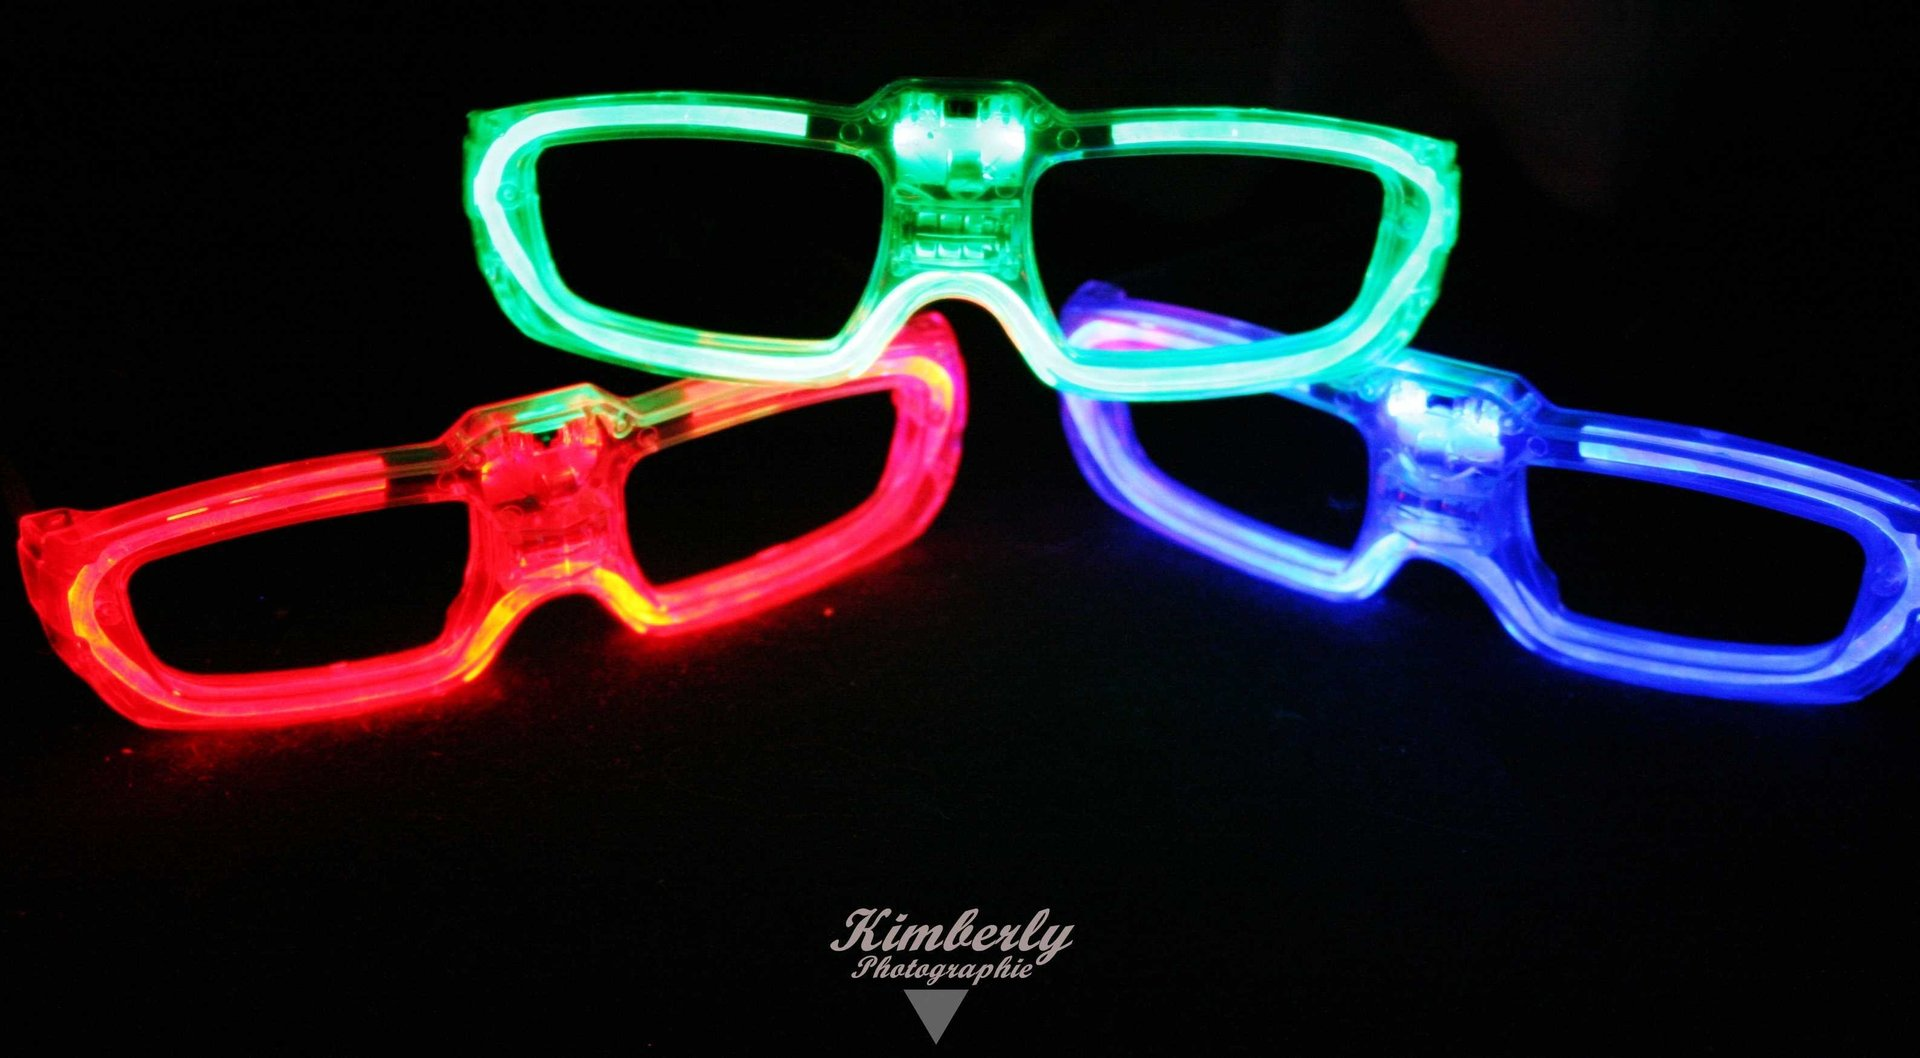 New 2018 Party Glasses Led Discobrille Sound Sensor Activated Dark Or Lamp Flasher Red Green Blue